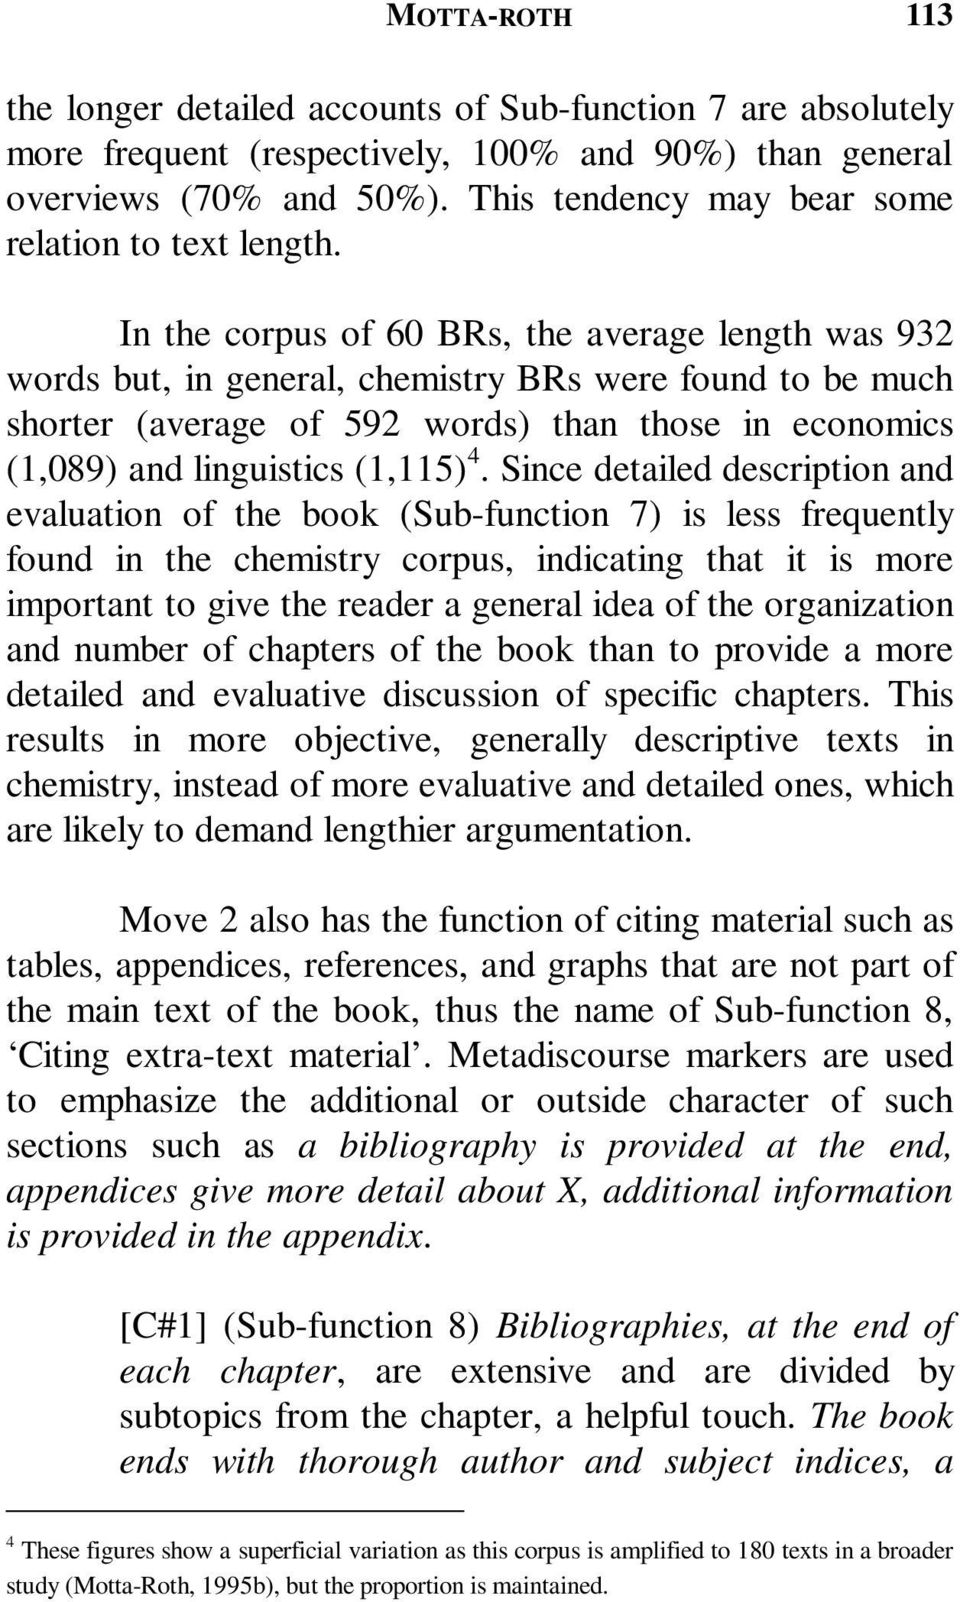 In the corpus of 60 BRs, the average length was 932 words but, in general, chemistry BRs were found to be much shorter (average of 592 words) than those in economics (1,089) and linguistics (1,115) 4.